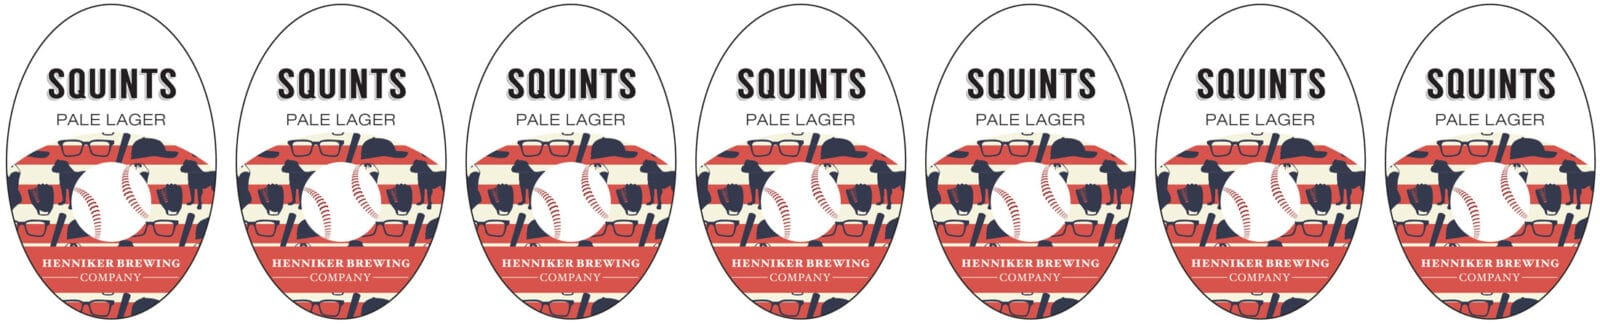 Squints Pale Ale by Henniker header